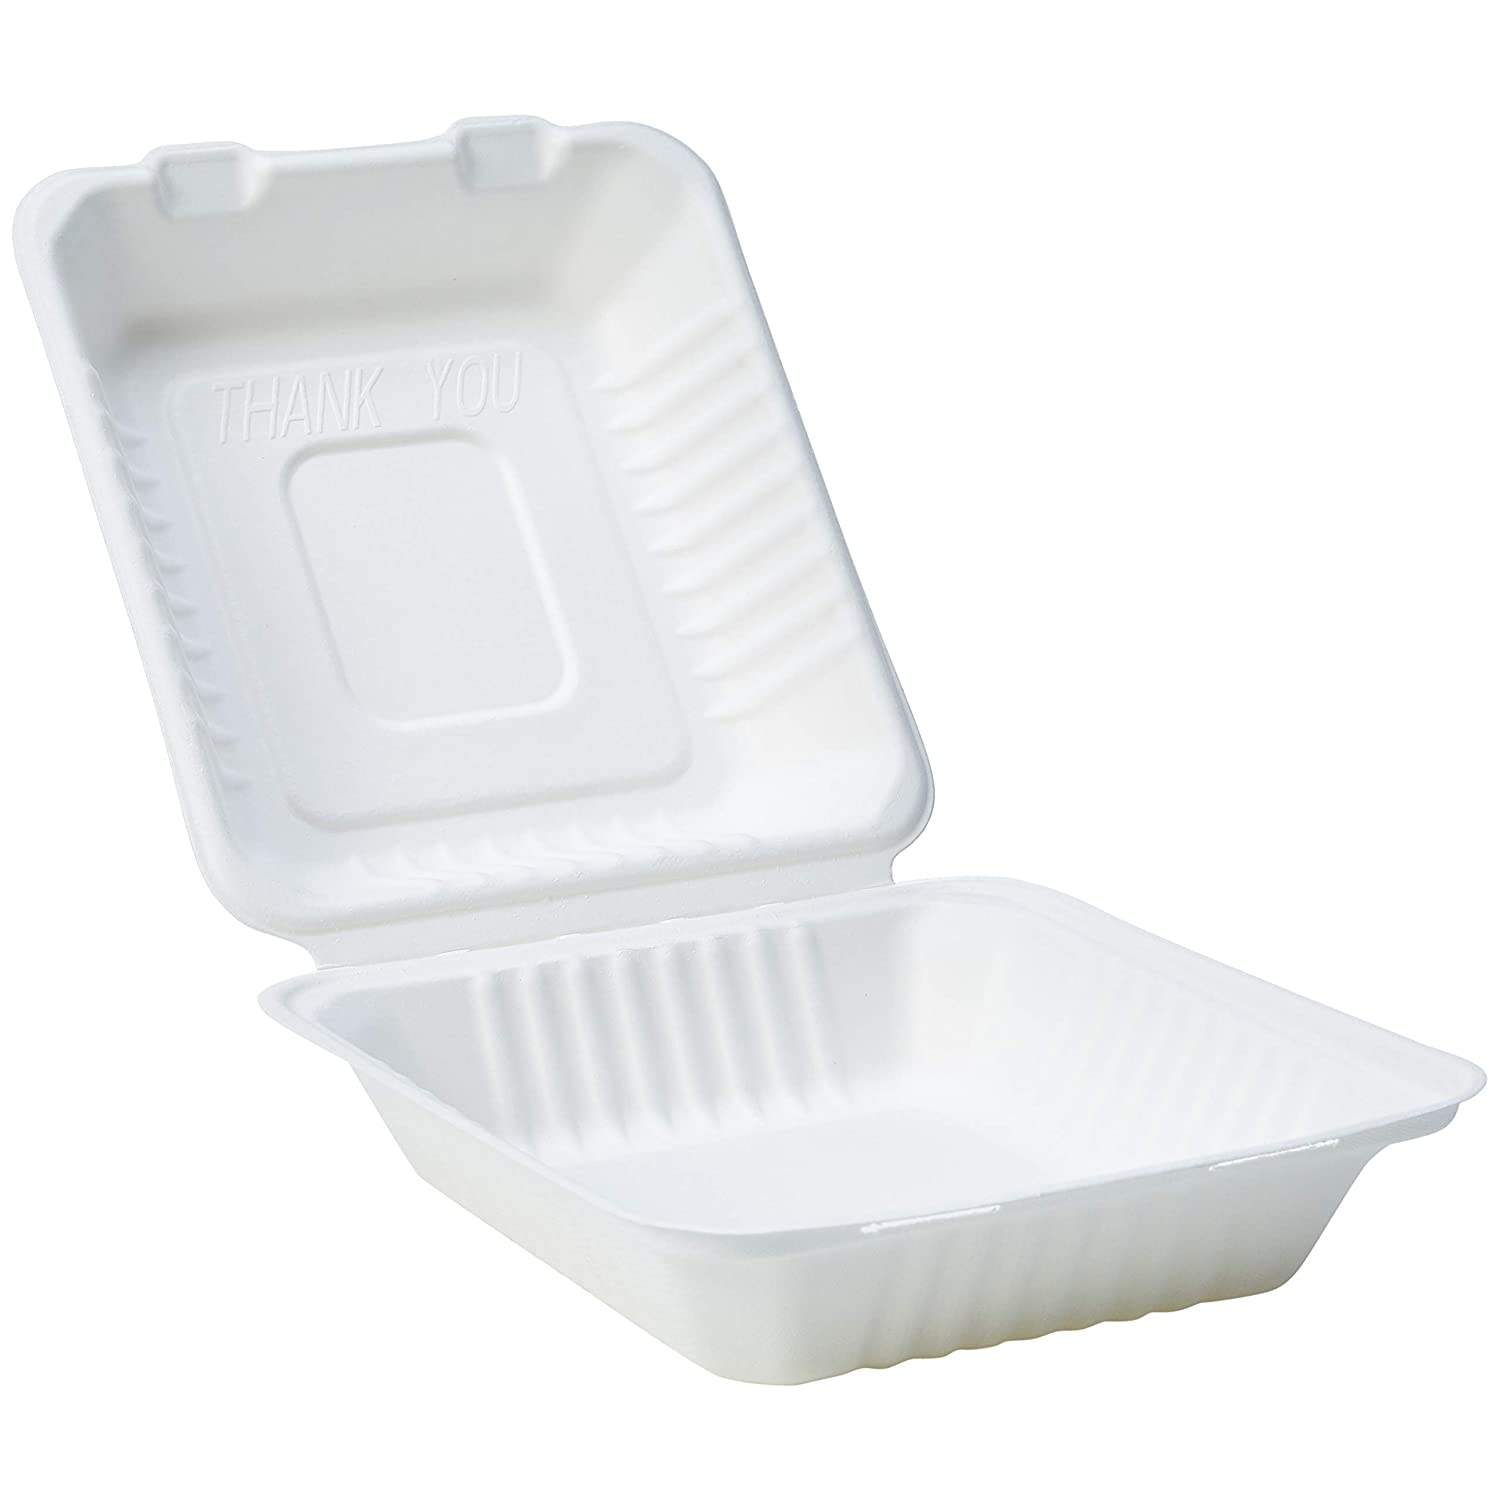 AmazonBasics Compostable Clamshell Hinged Food Container, 8